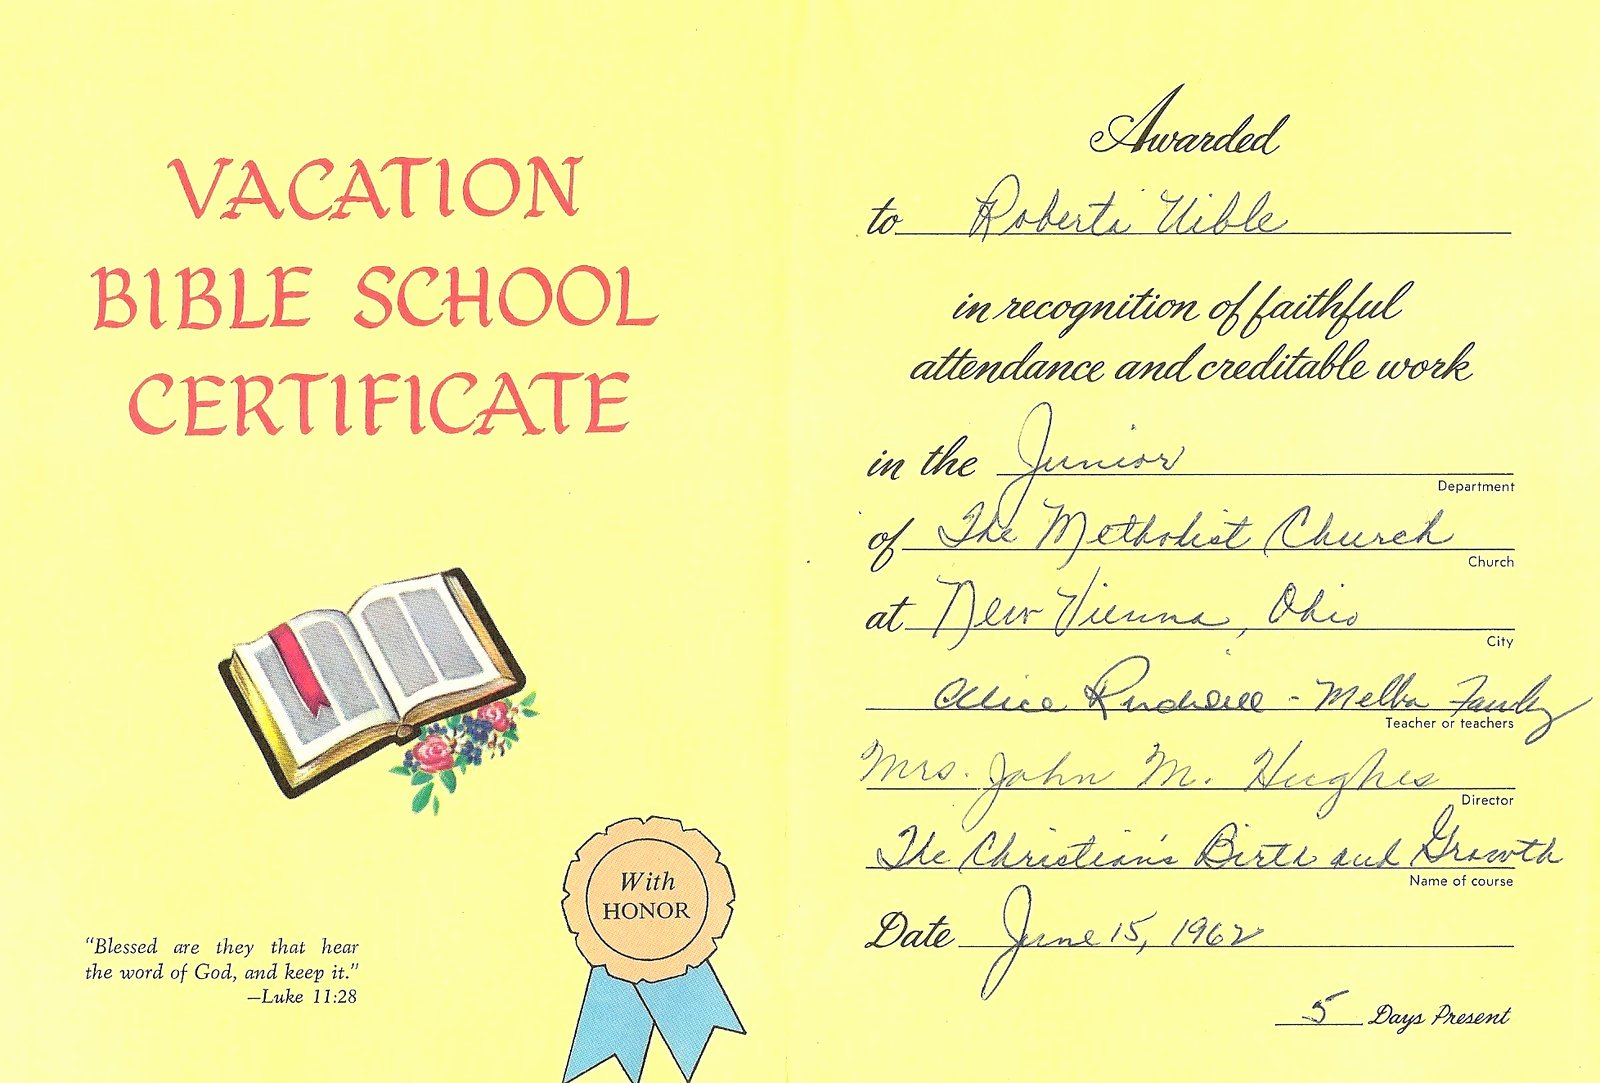 Vbs Certificate Of attendance Luxury Uibles A Family Blog 1962 Roberta S Vacation Bible